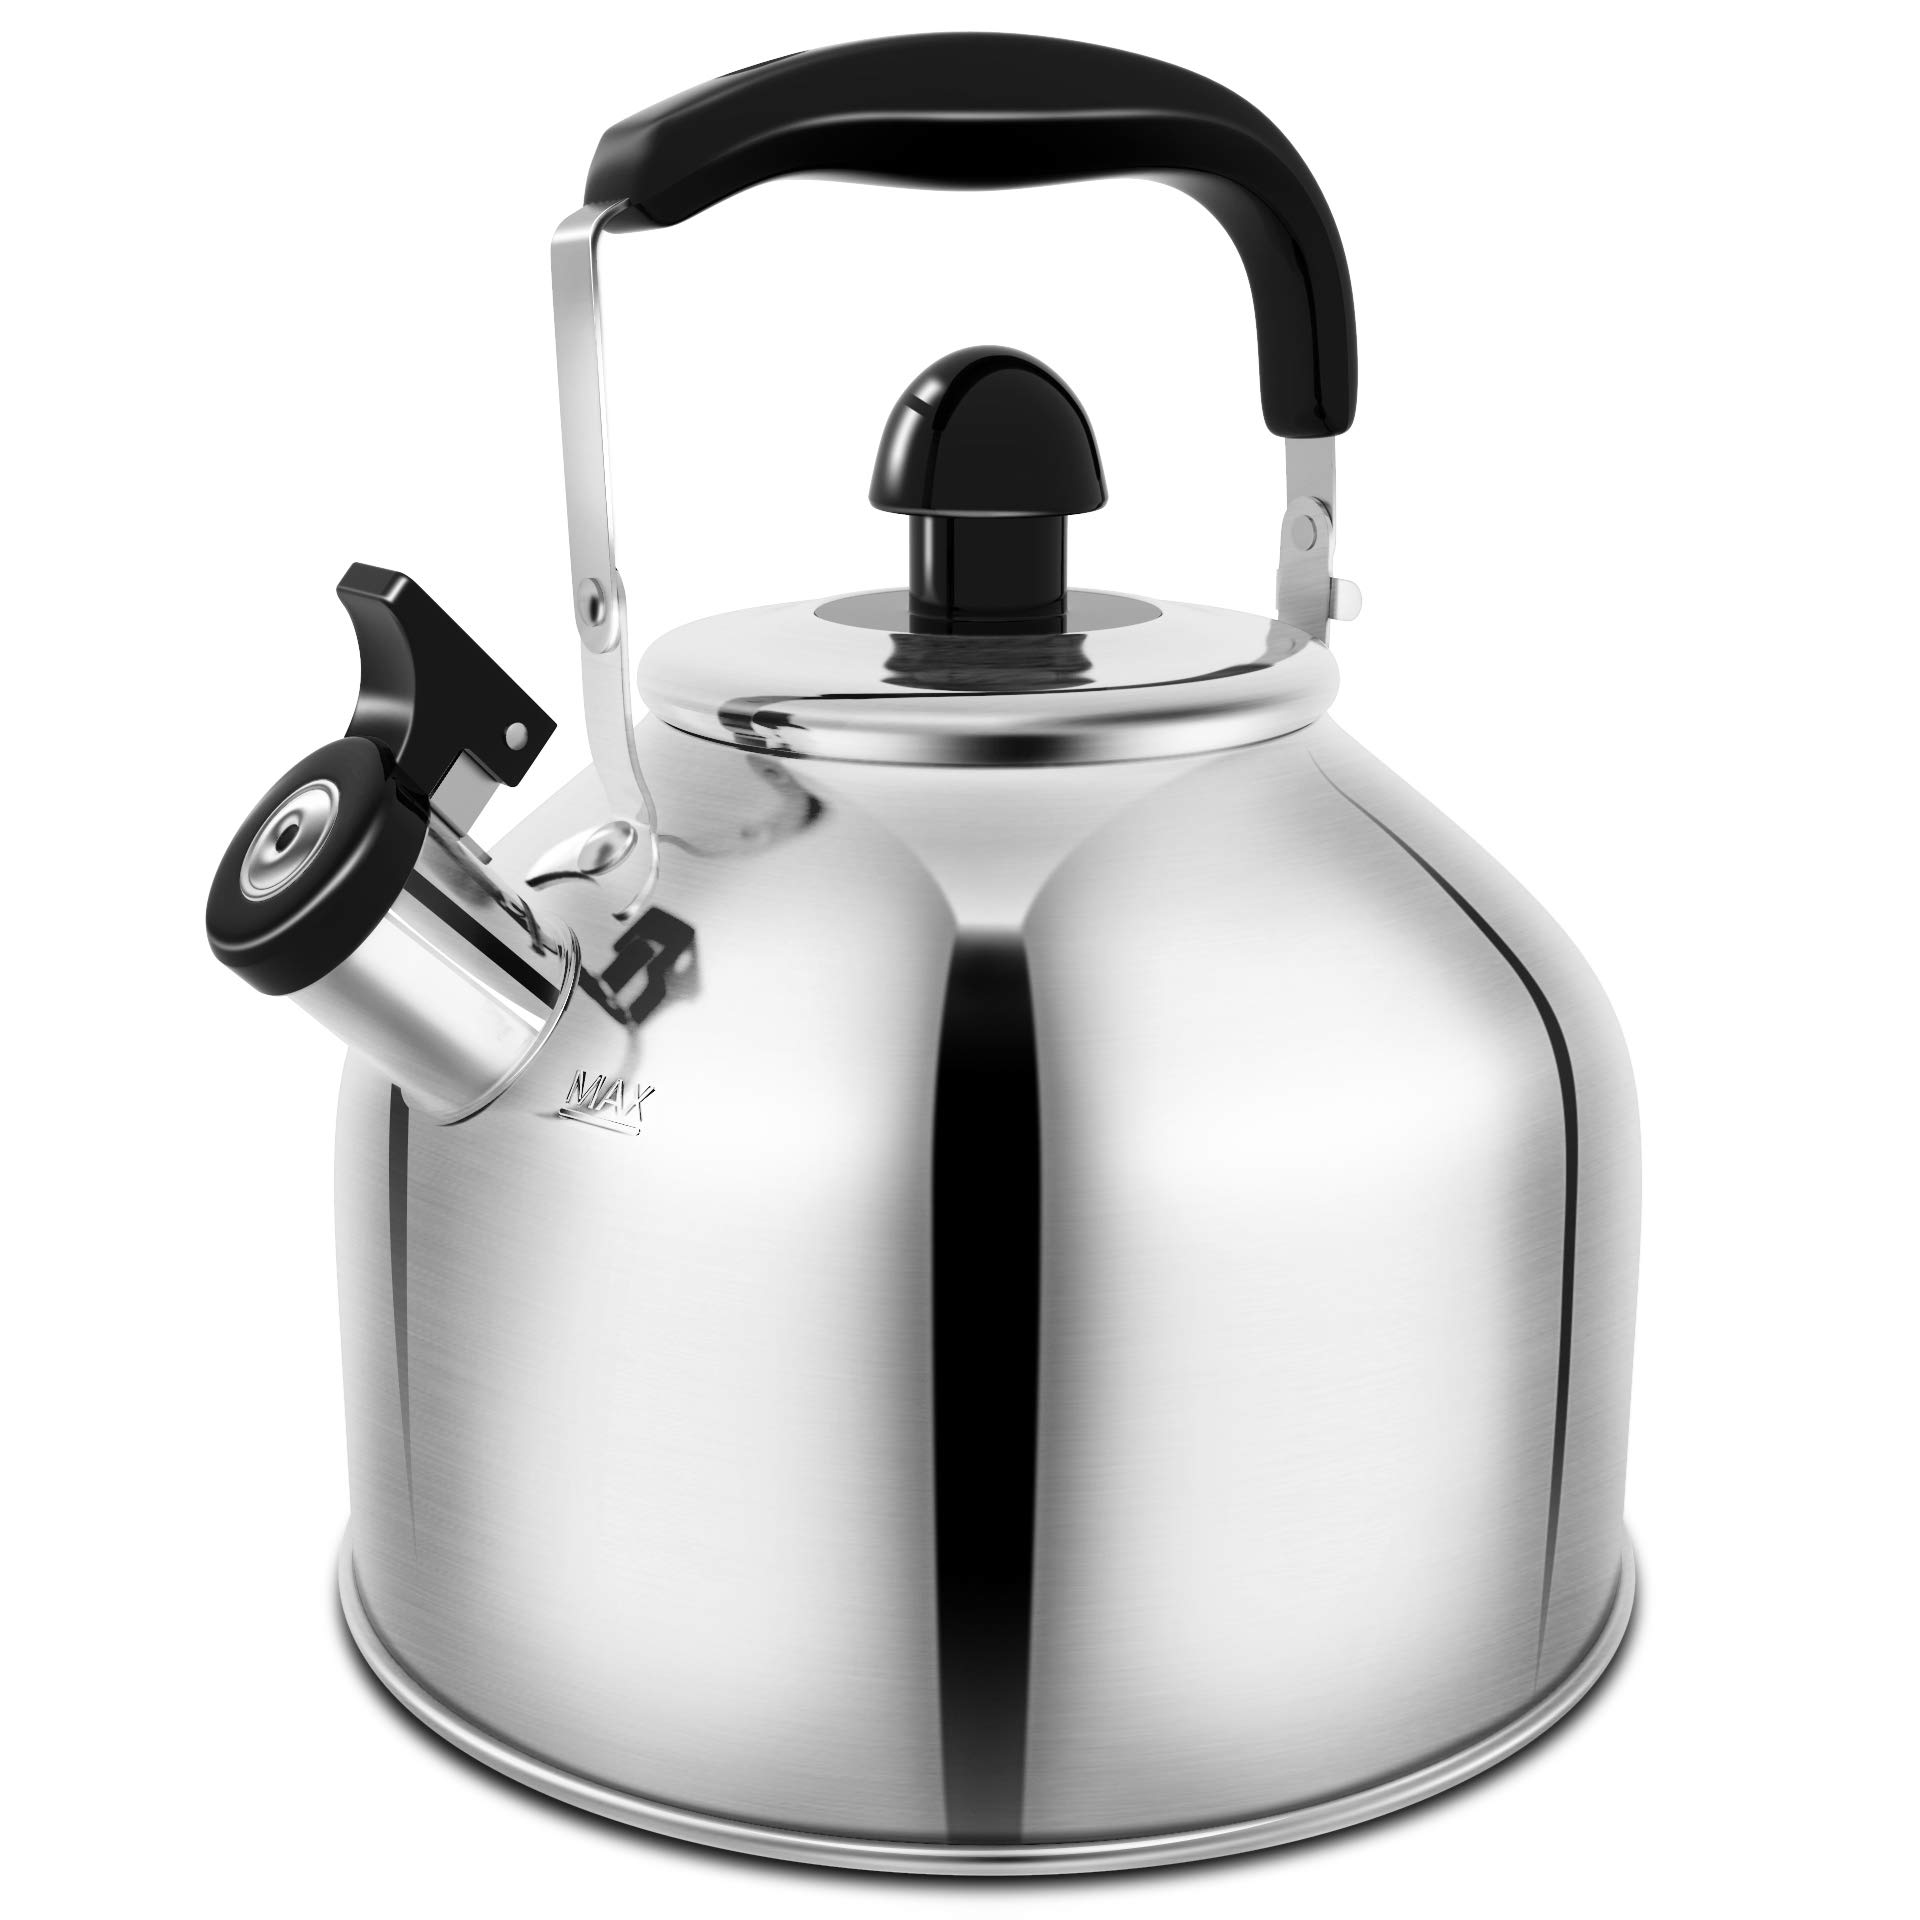 Whistling Tea Kettle Stove TopTeapot, 3.9 Qt Stainless Steel Teakettle with Fast Boiling Base by AMFOCUS